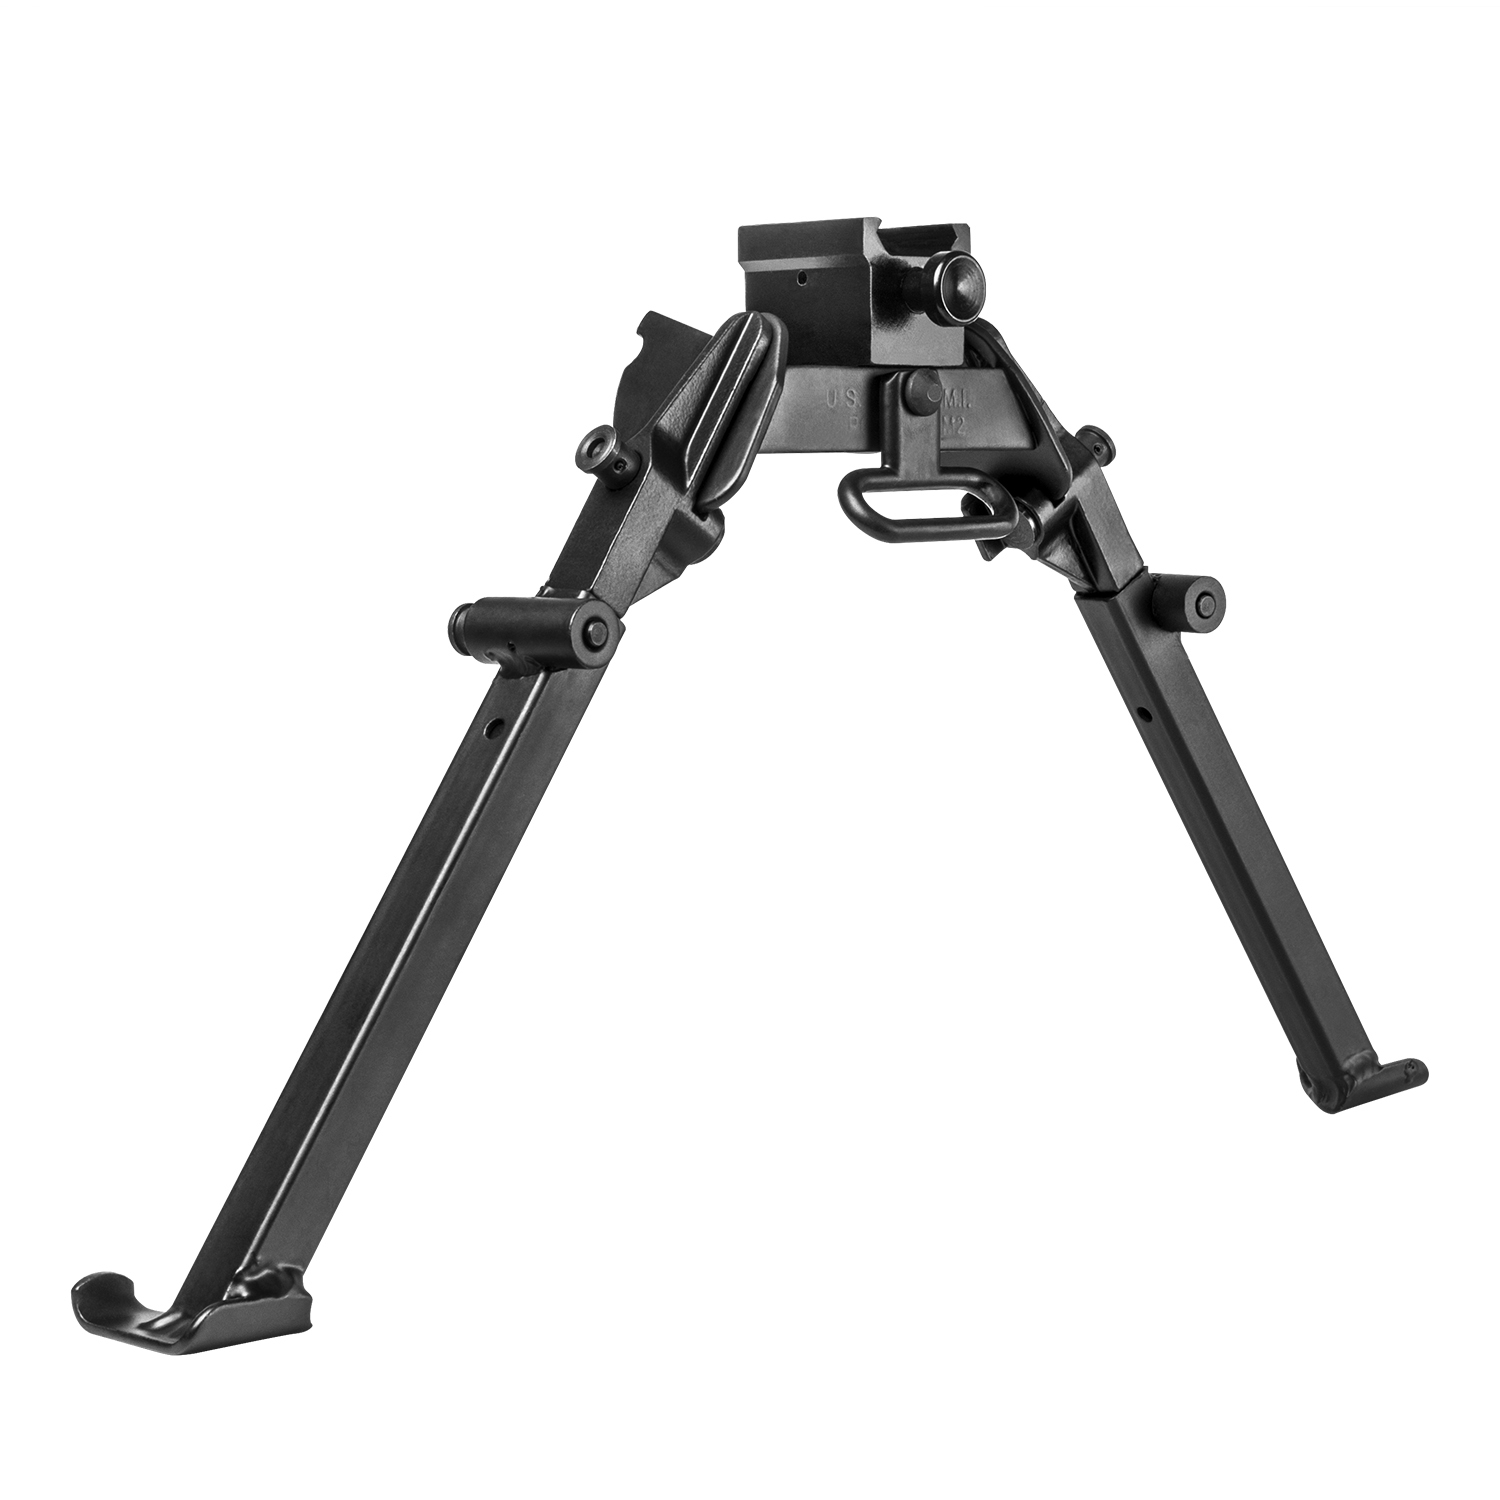 Ncstar M14 Bipod With Quick Release Weaver Mount